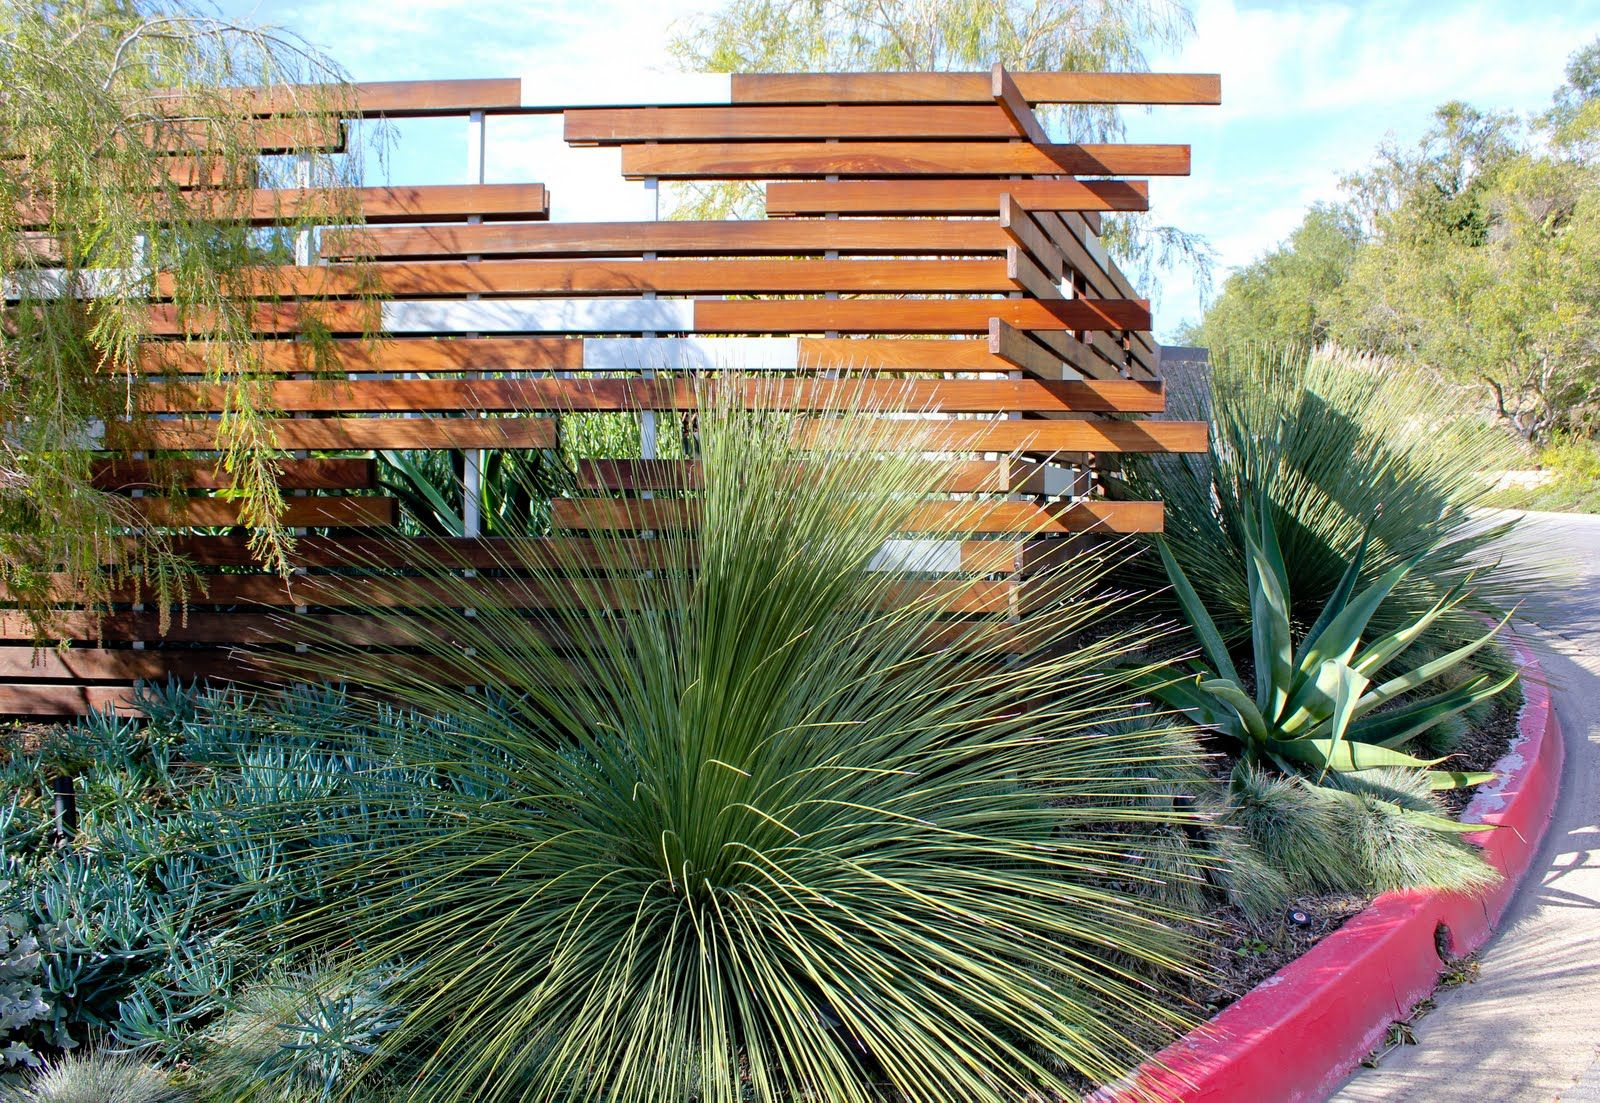 Wooden Fence Designs Ideas diy wood fence designs wooden fence designs ideas Modern Fence Design 2 X 1103 Px